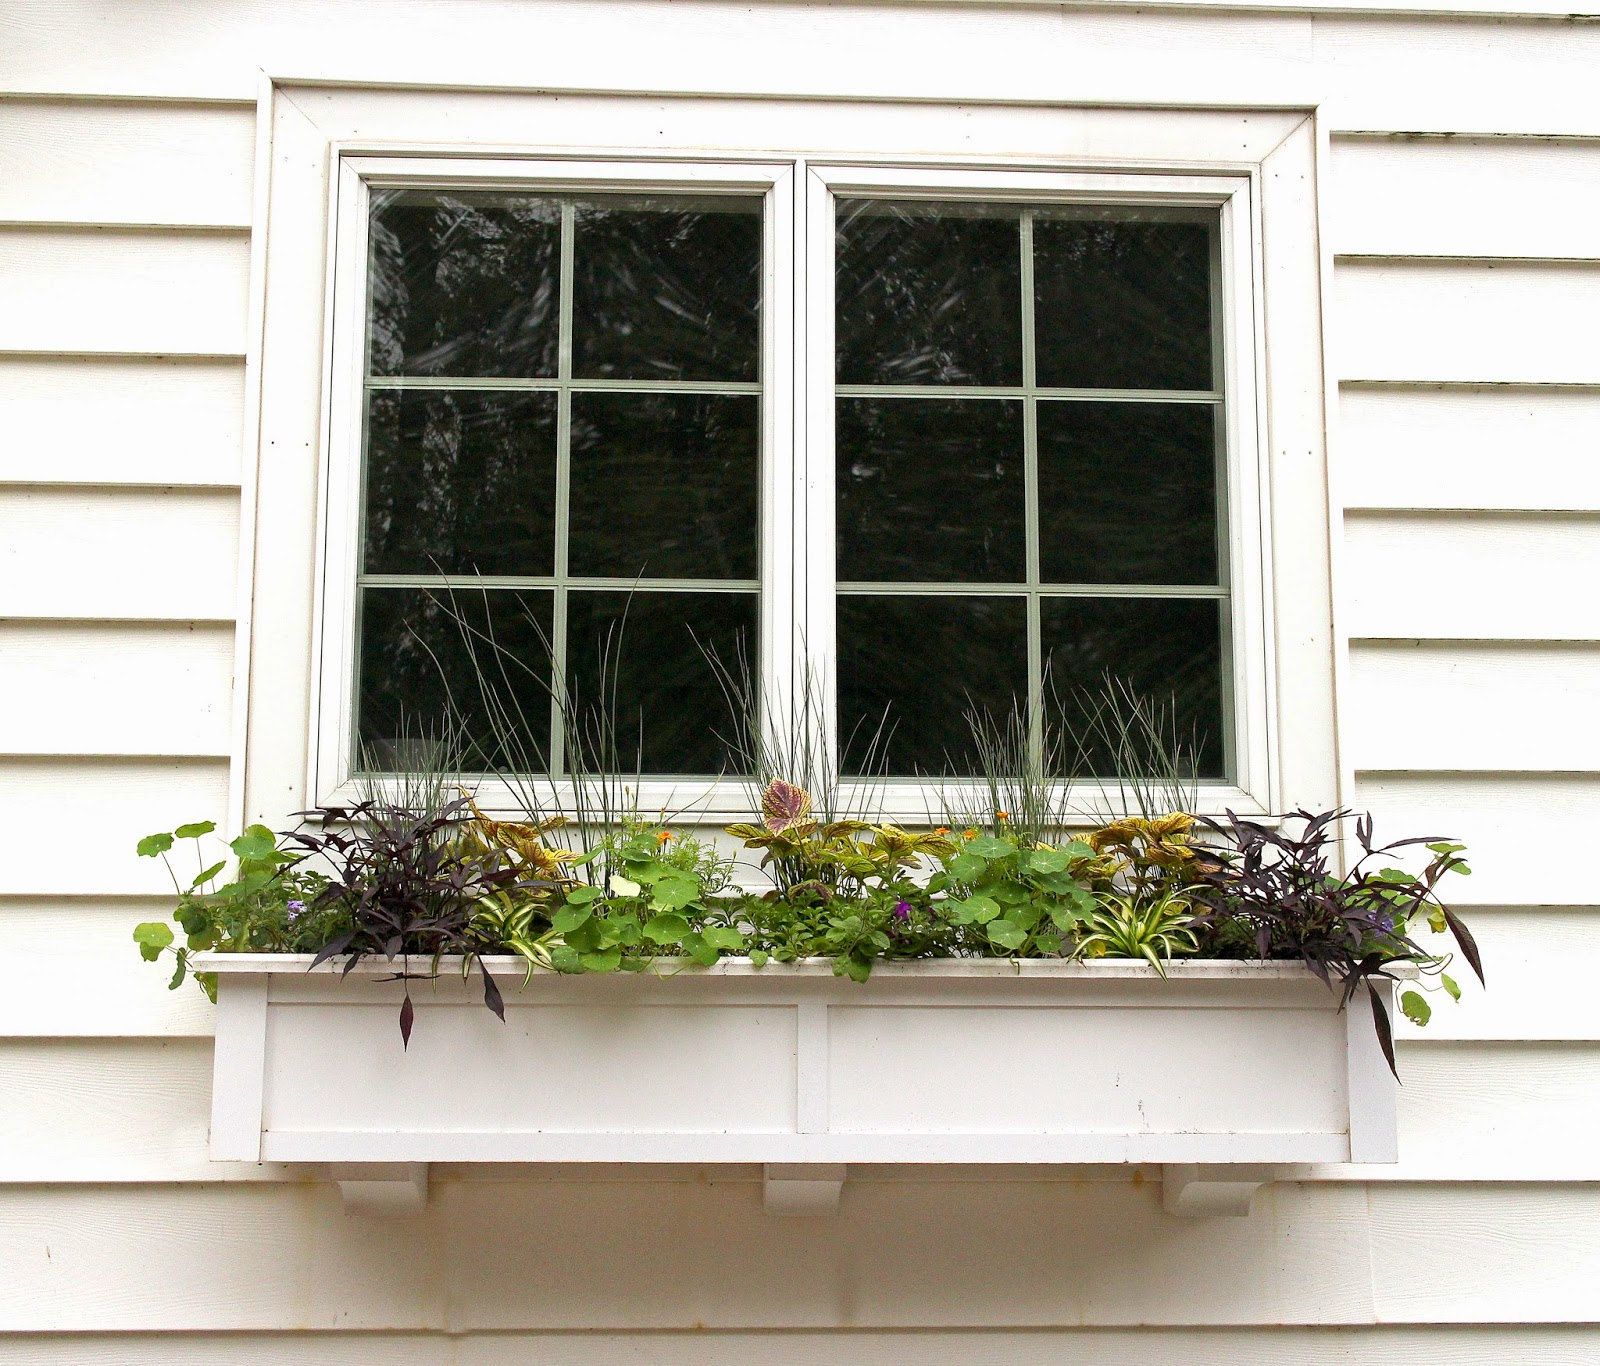 The Impatient Gardener ANOTHER SPRING ANOTHER WINDOW BOX DESIGN